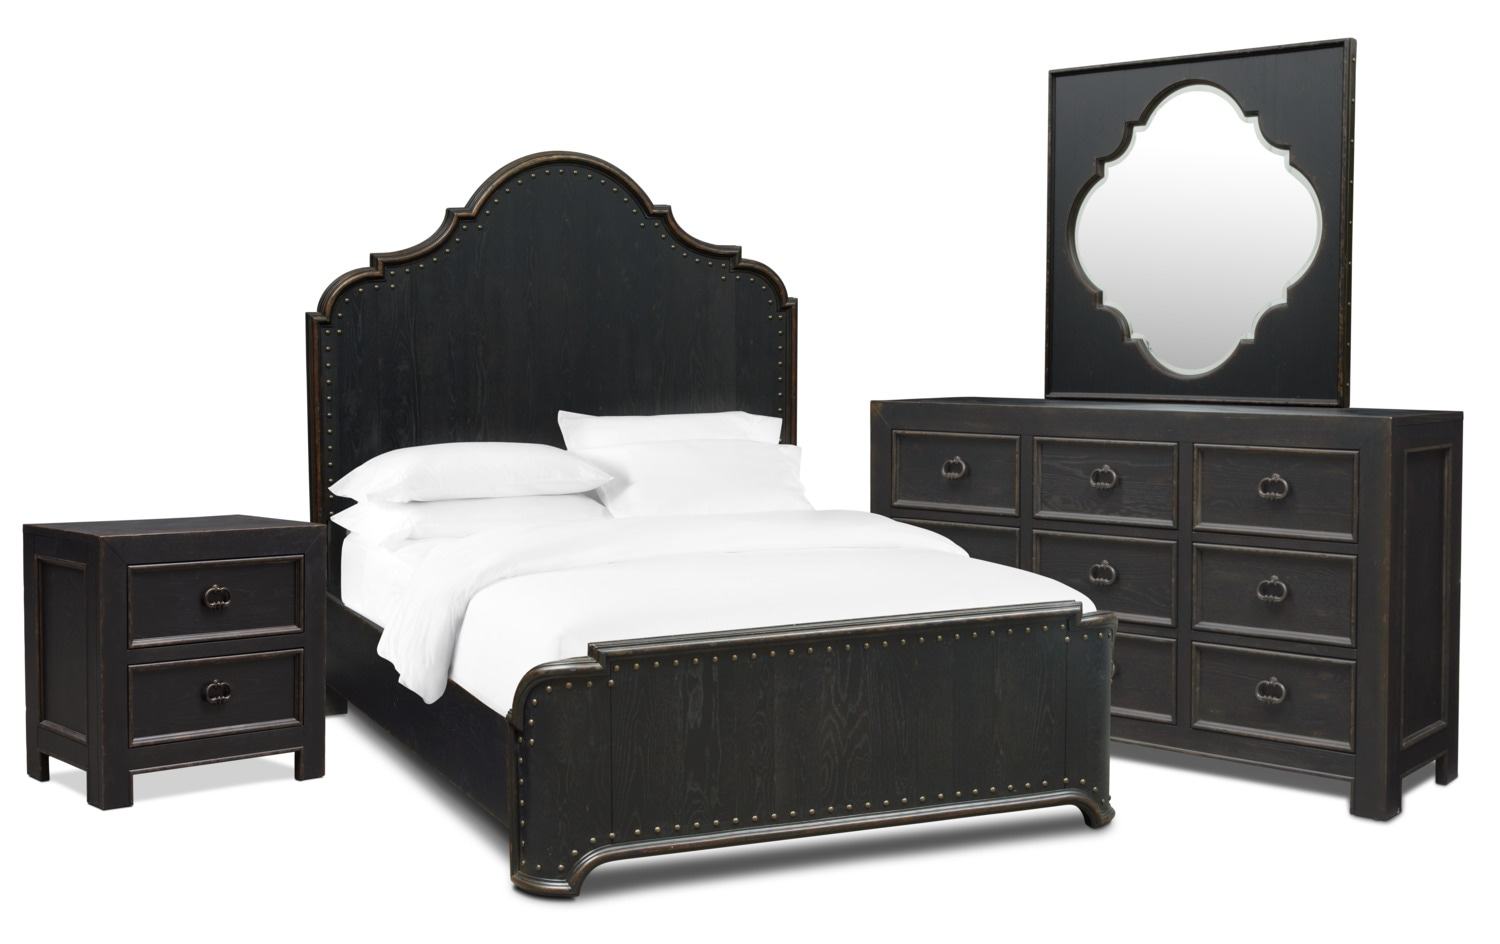 Lennon 6 Piece Queen Bedroom Set With Nightstand Dresser And Mirror Kettle Black Bedroom Sets Queen